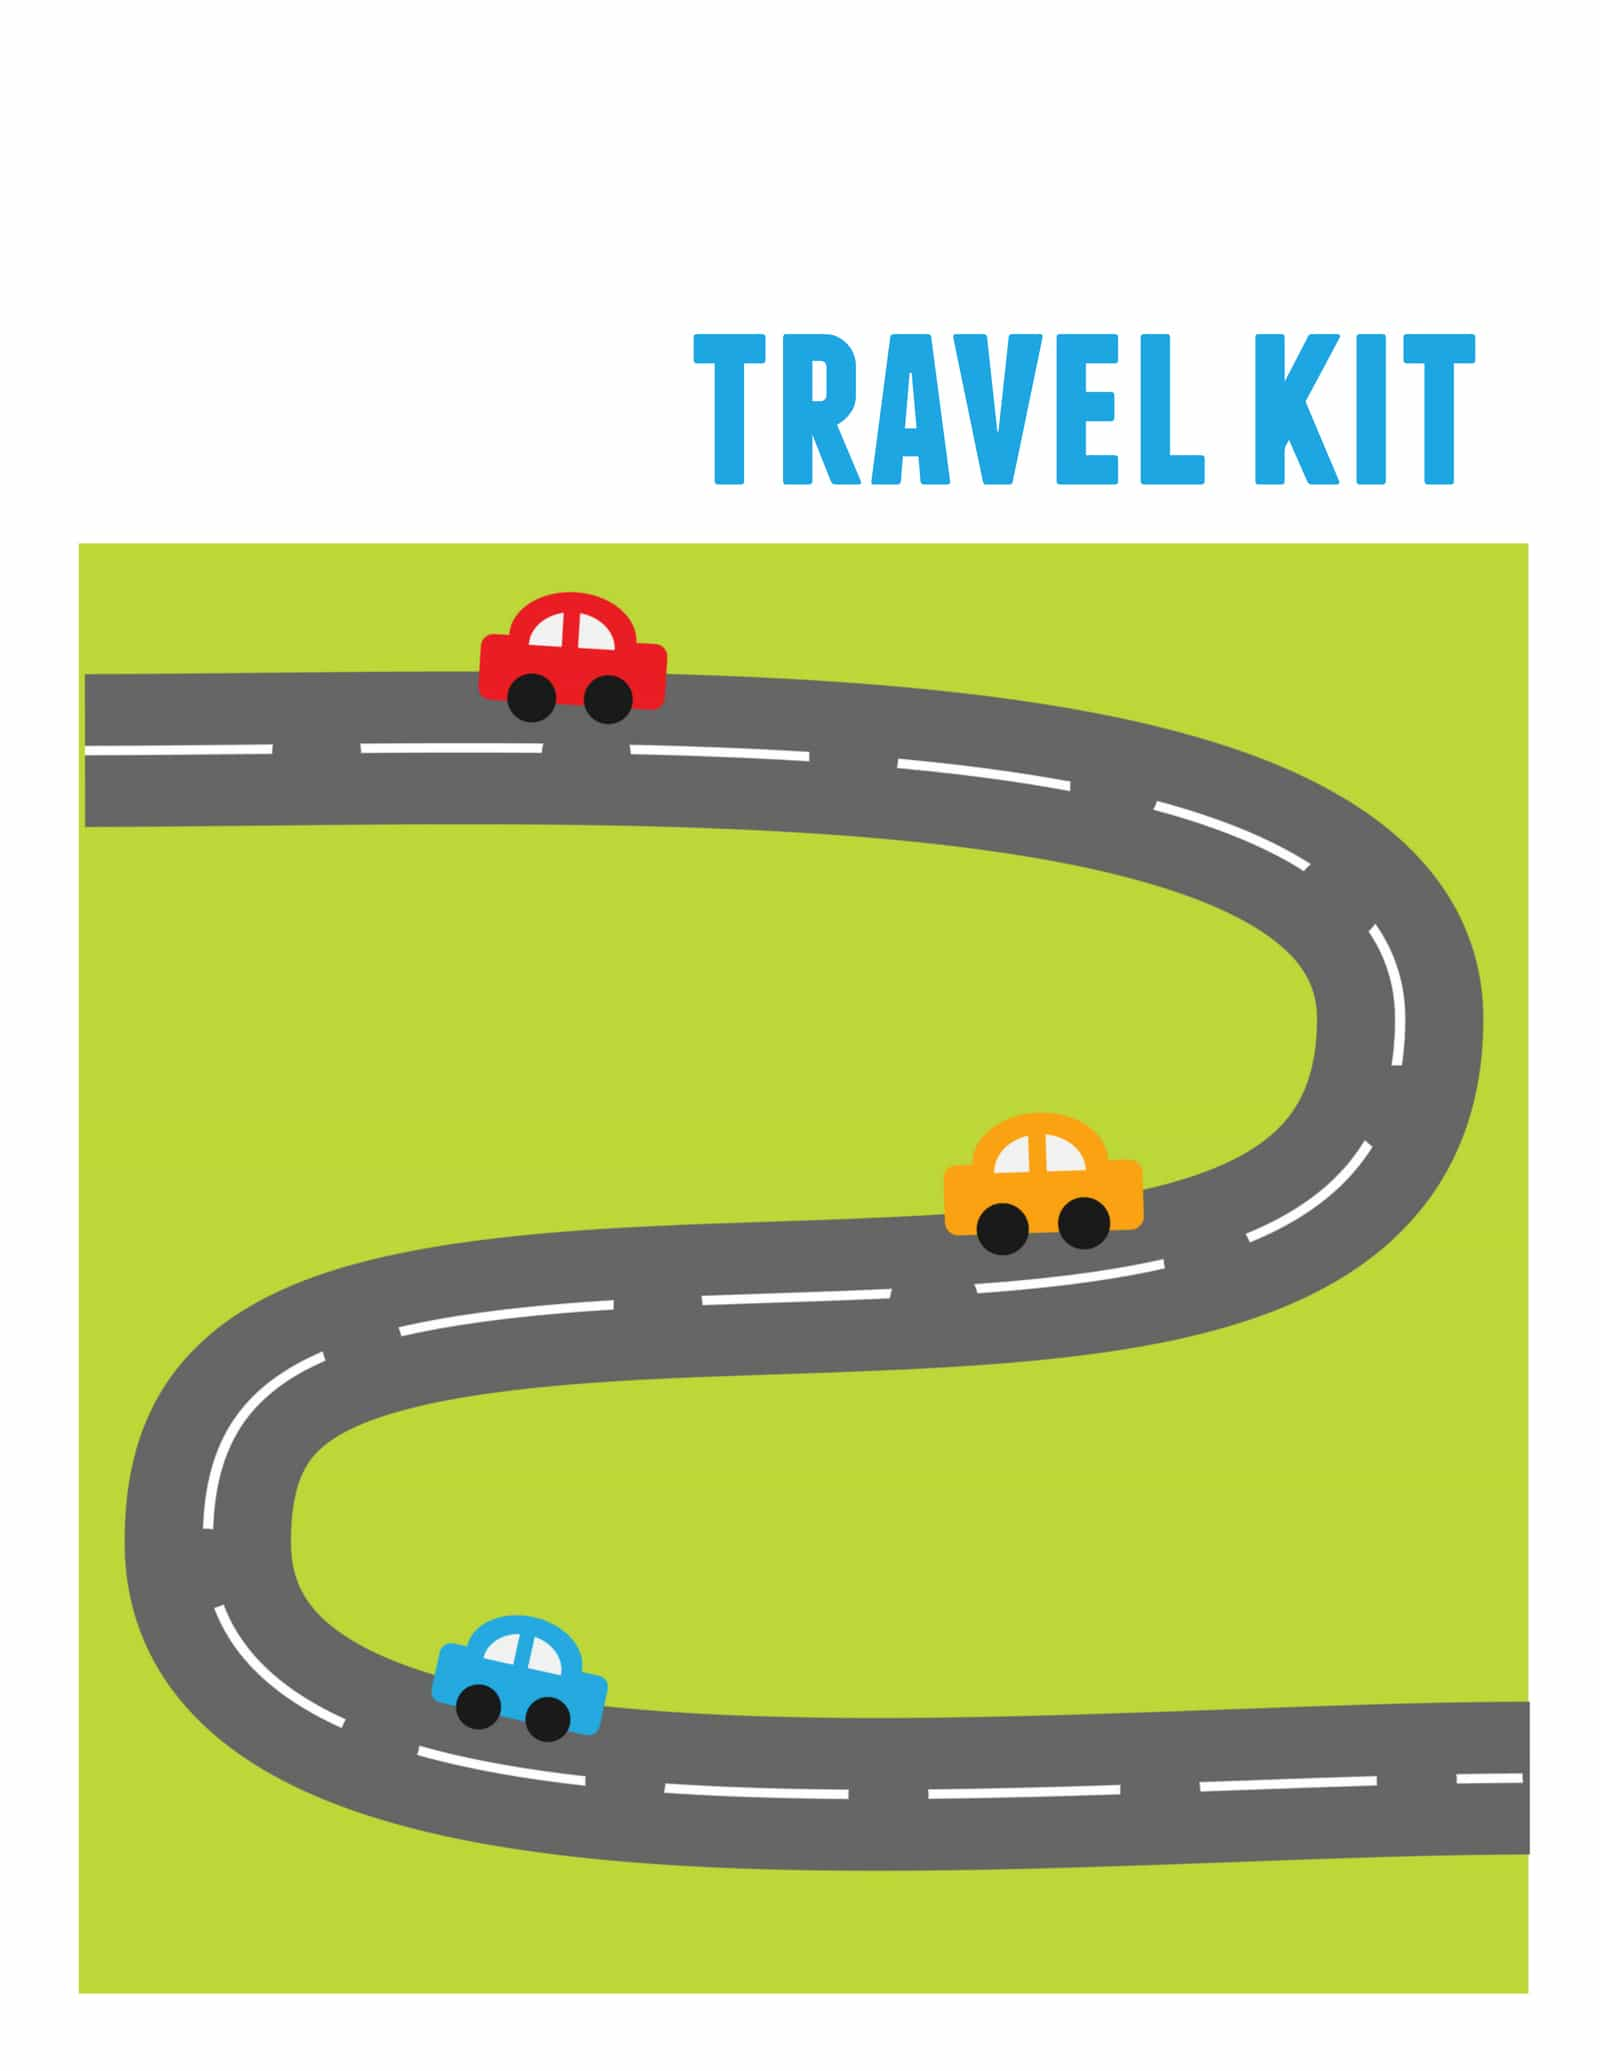 free printable kids travel kit template how to make a simple kids travel kit binder - Printable Children Activities